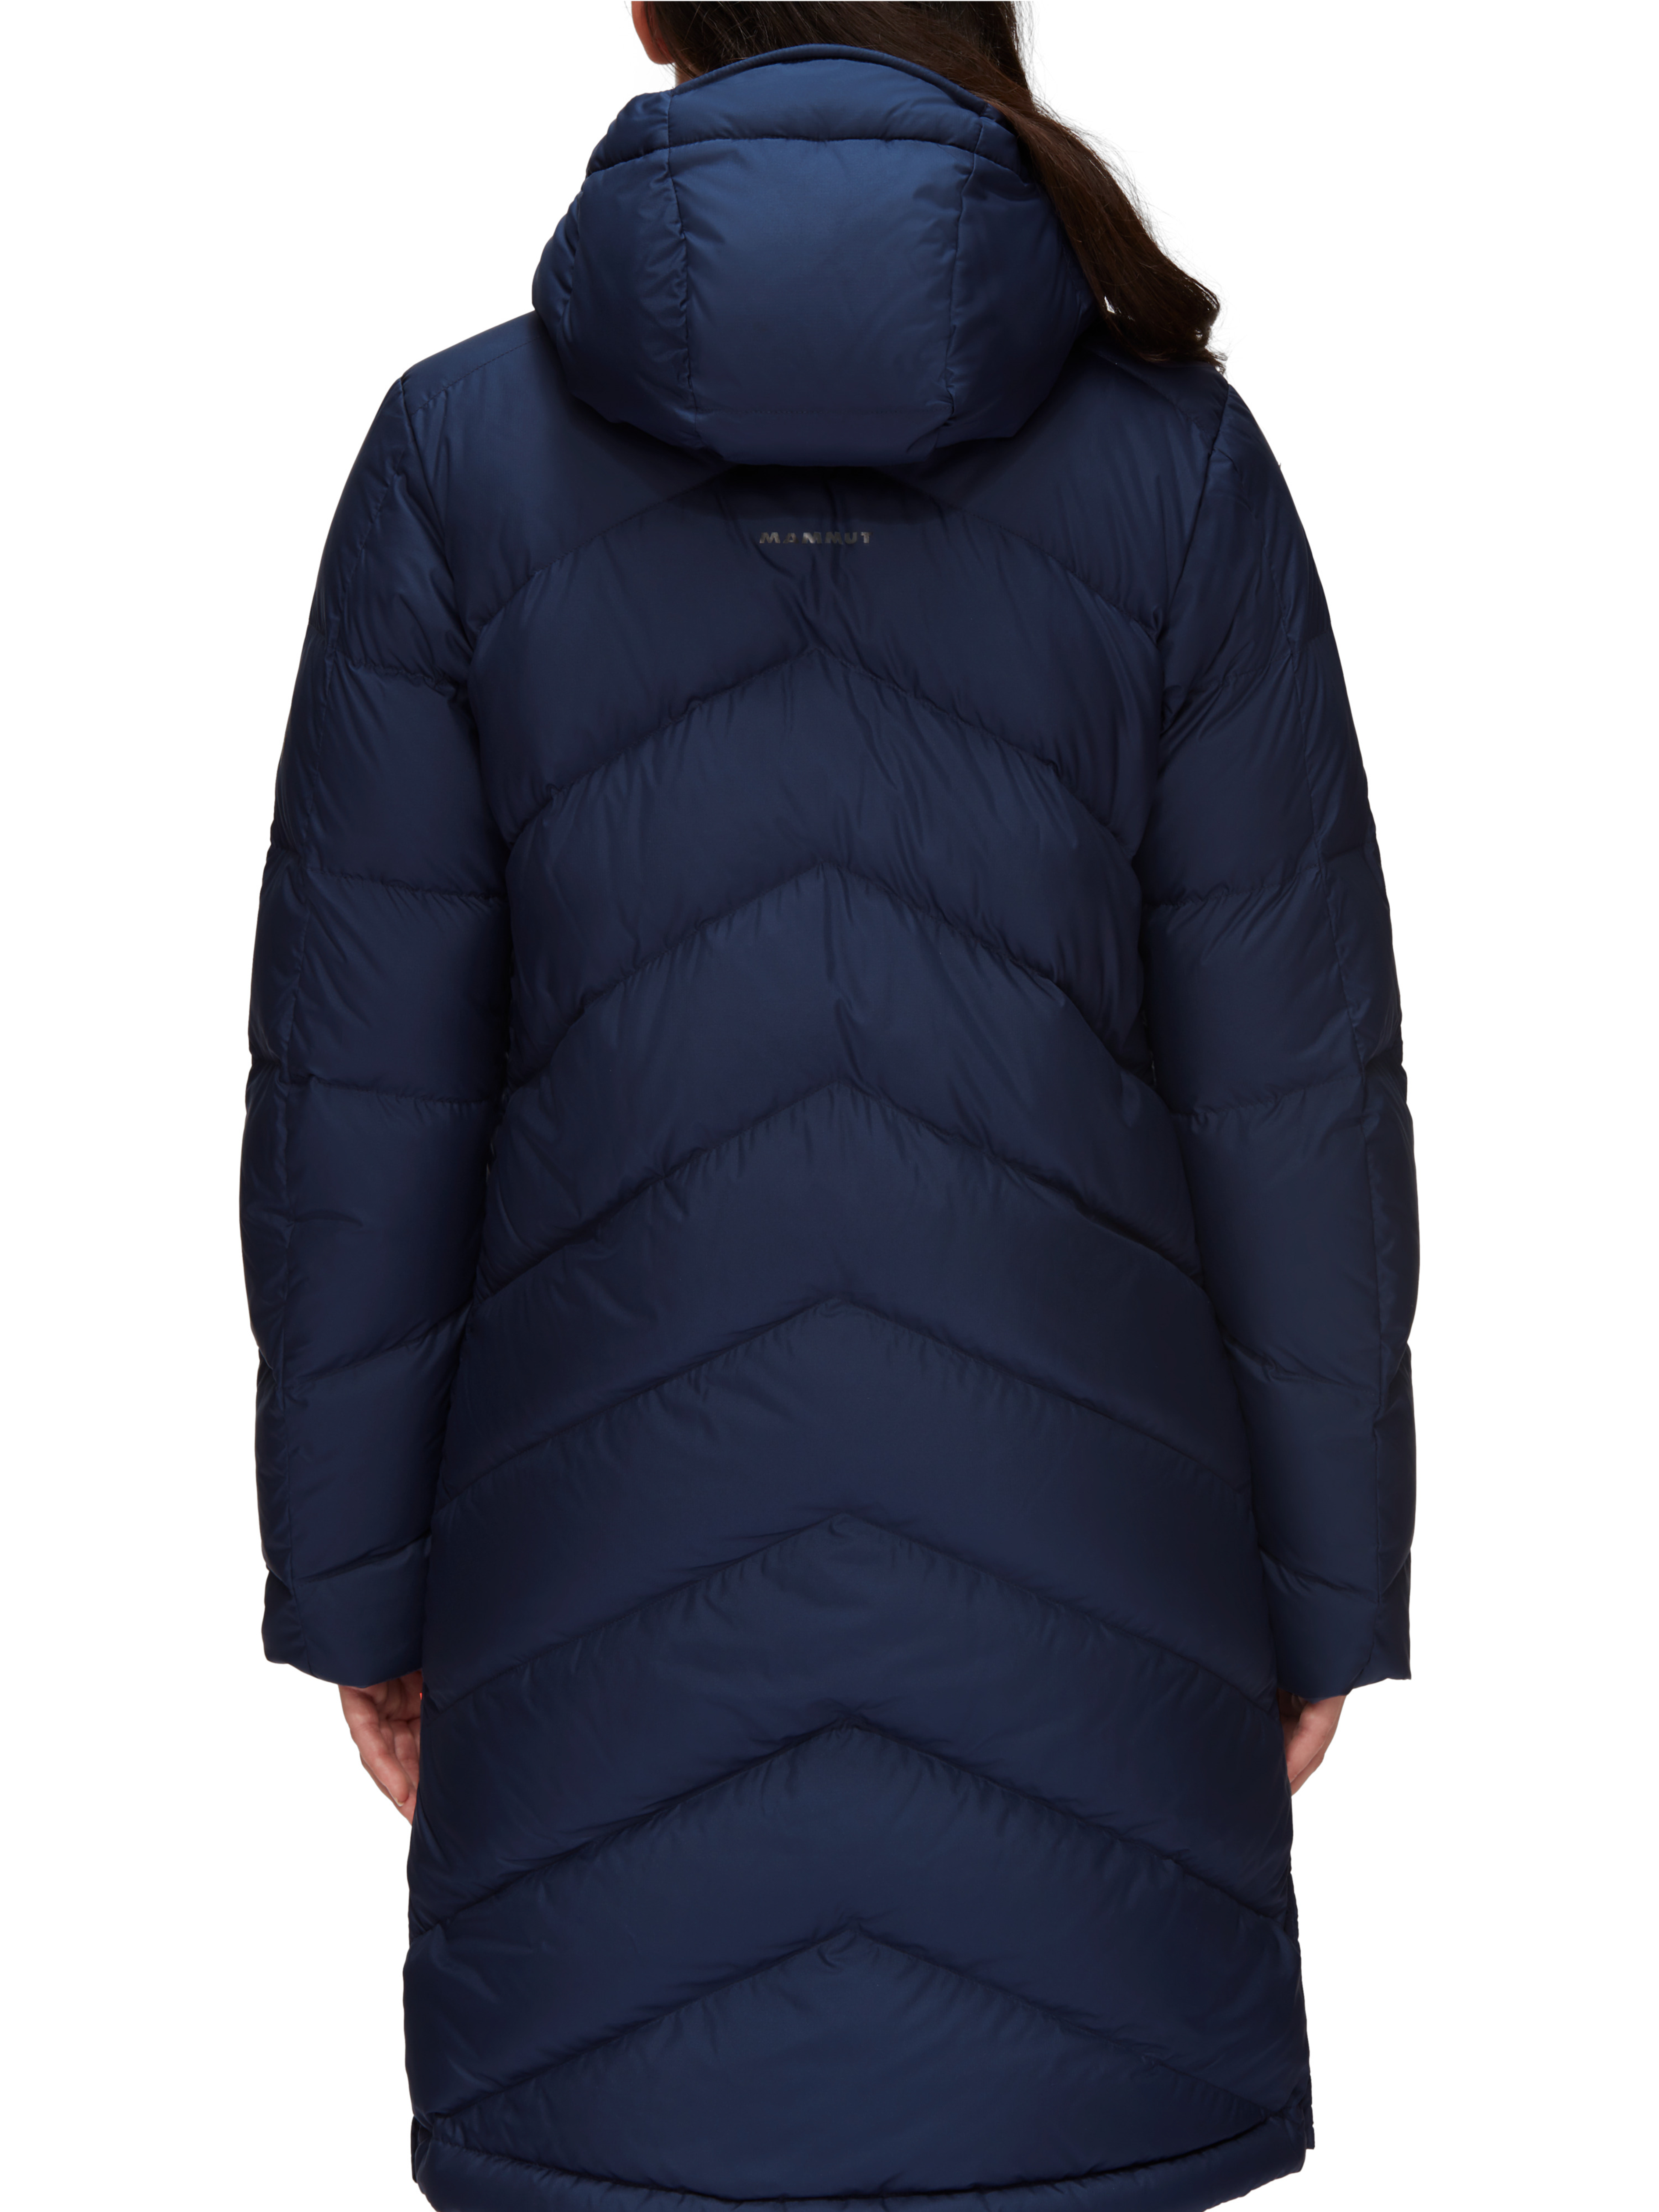 Fedoz IN Hooded Parka Women thumbnail